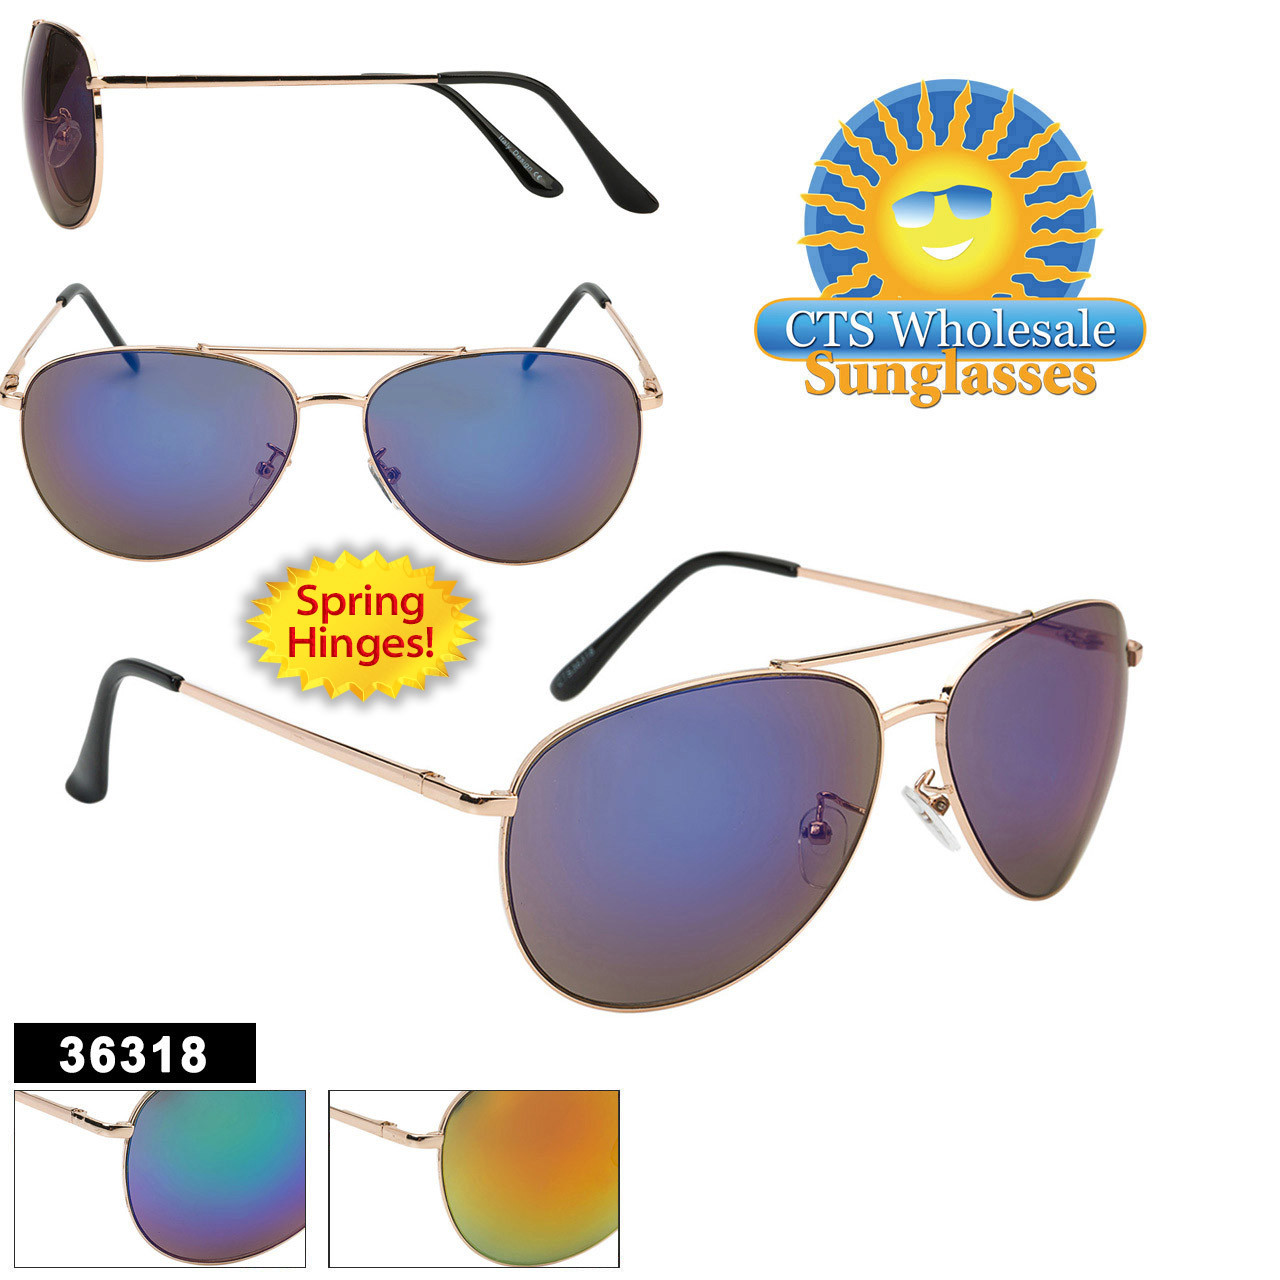 Aviator Sunglasses - Style #36318 Spring Hinge (Assorted Colors) (12 pcs.)